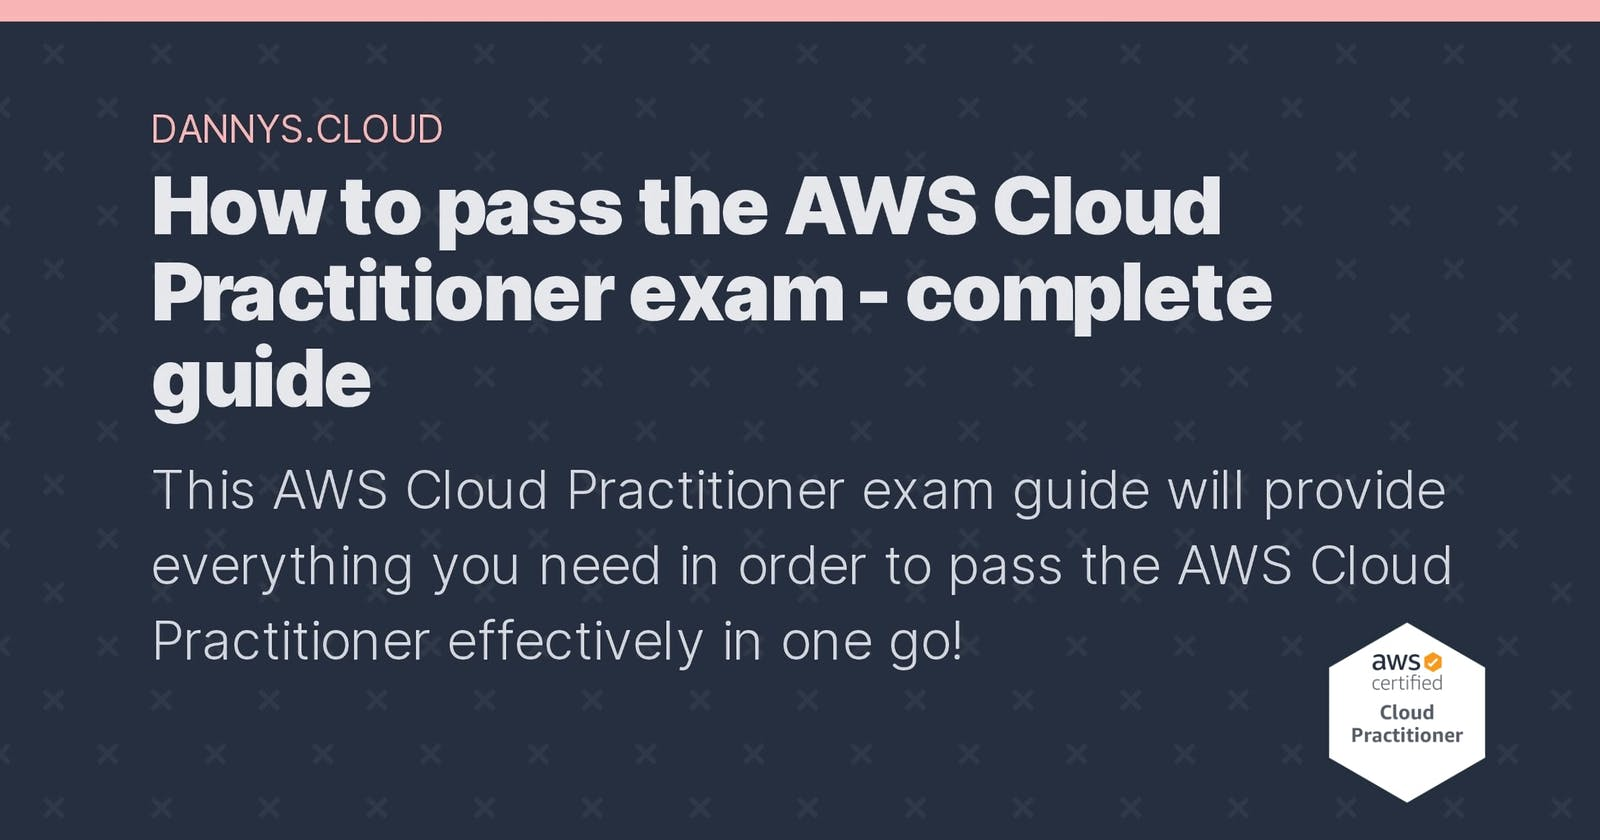 How to pass the AWS Cloud Practitioner exam - complete guide